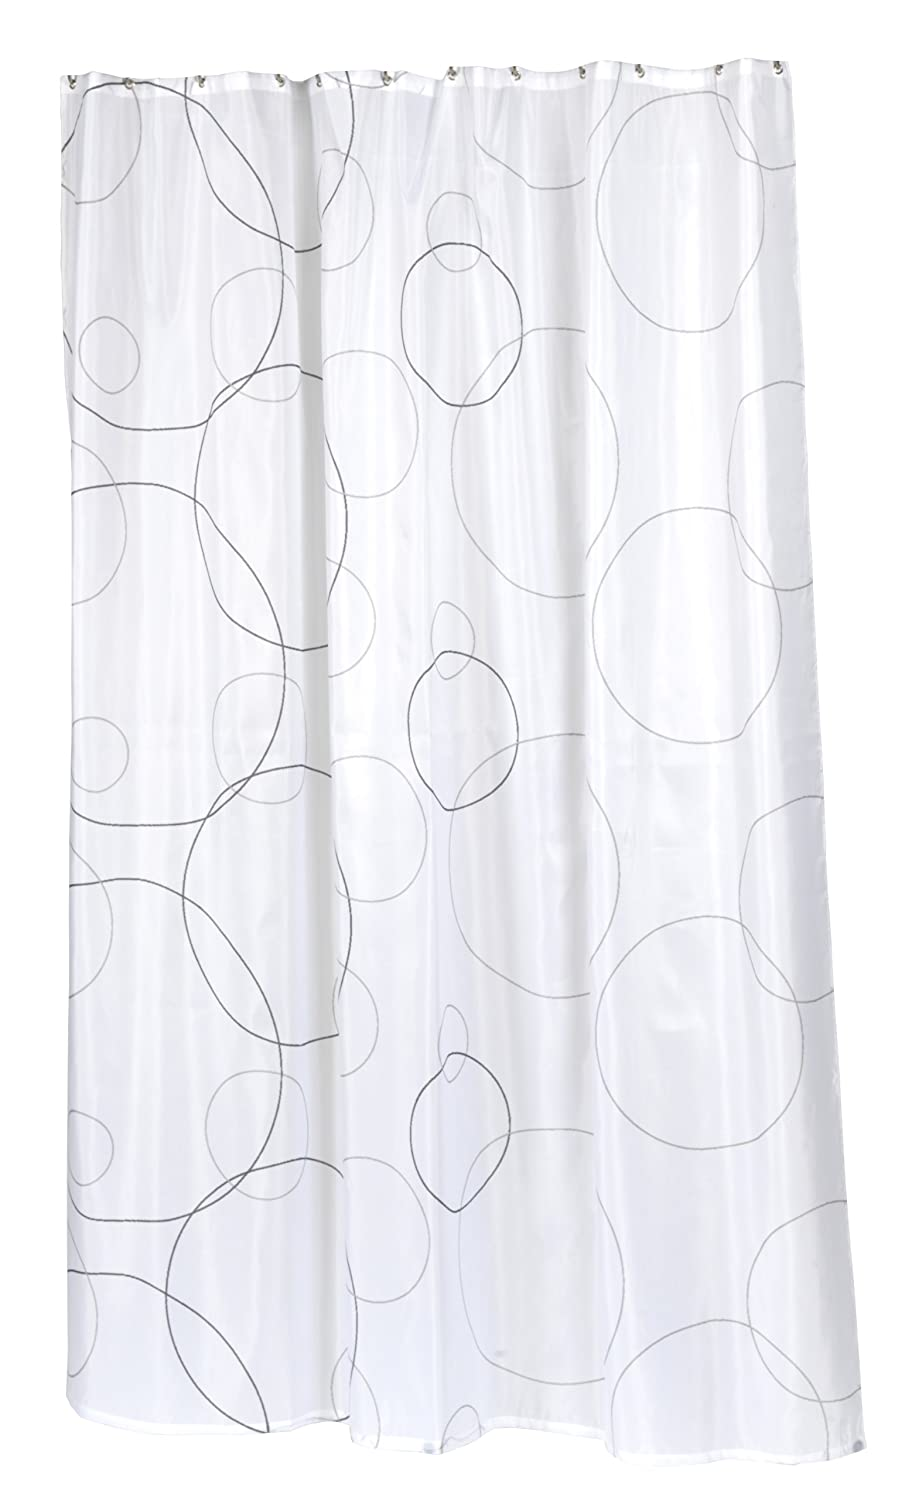 Amazon.com: Carnation Home Fashions 100-Percent Polyester Fabric ...